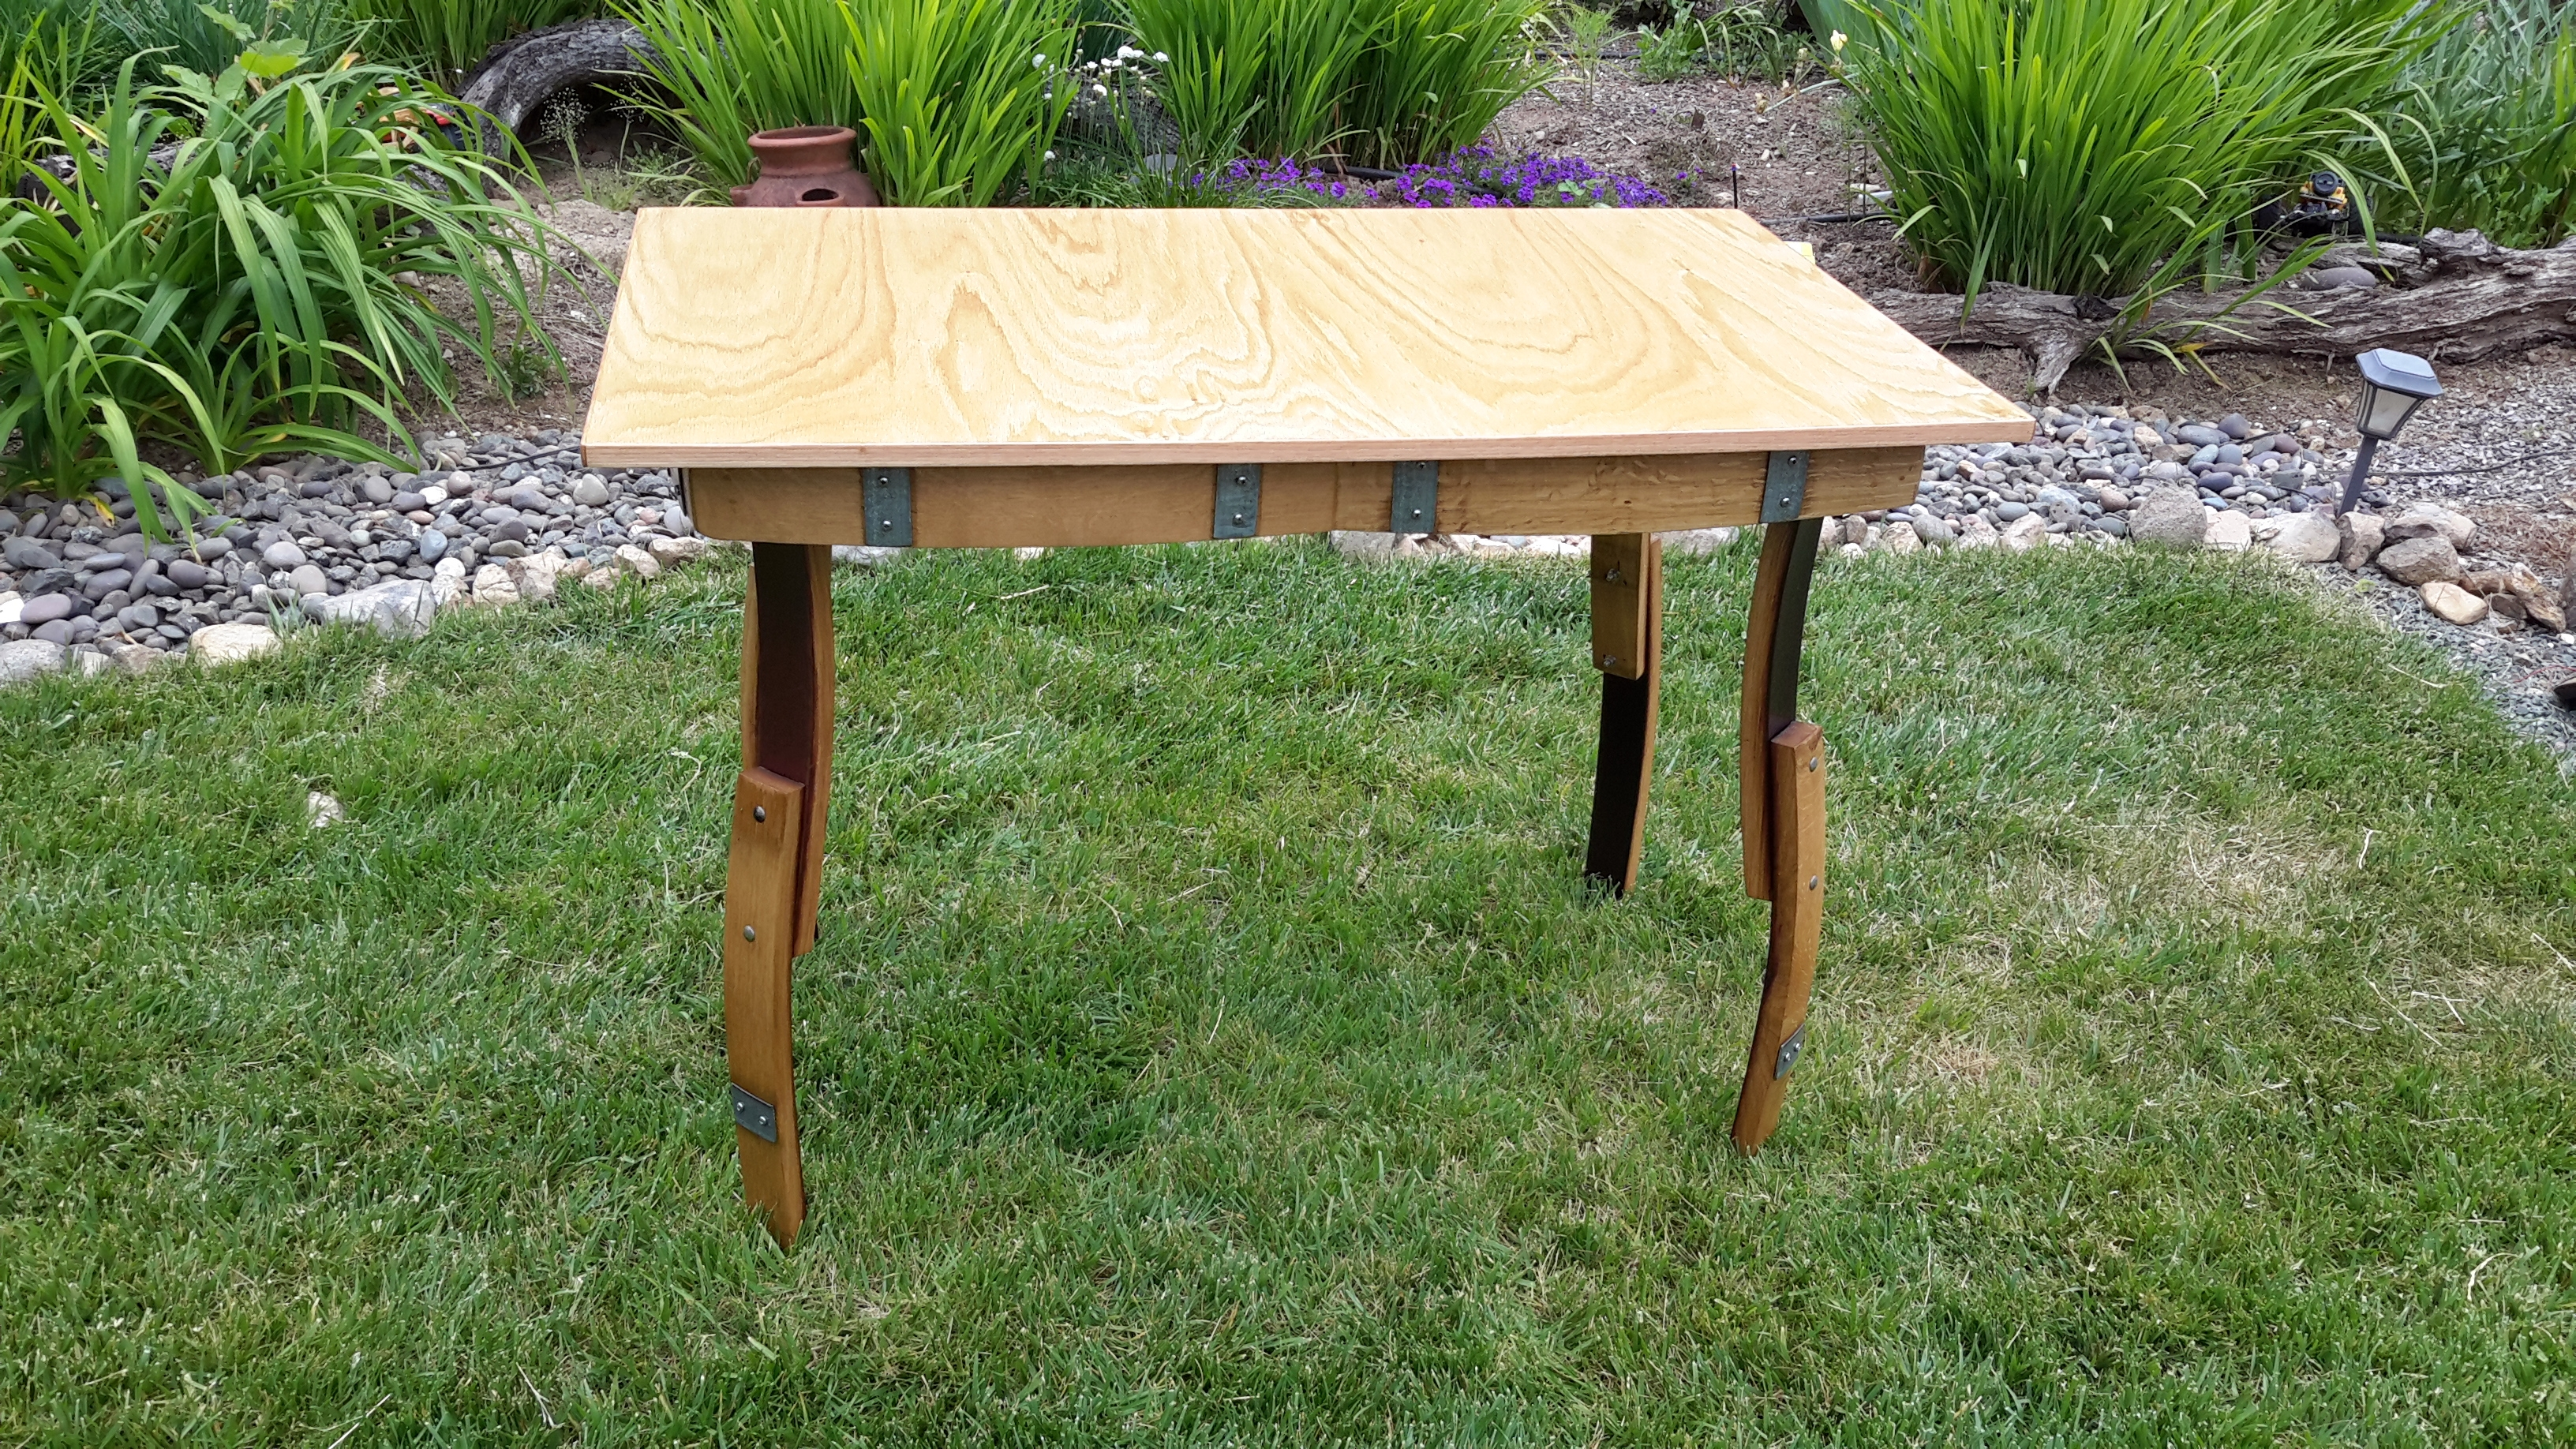 G.cotati display table lrg..jpg